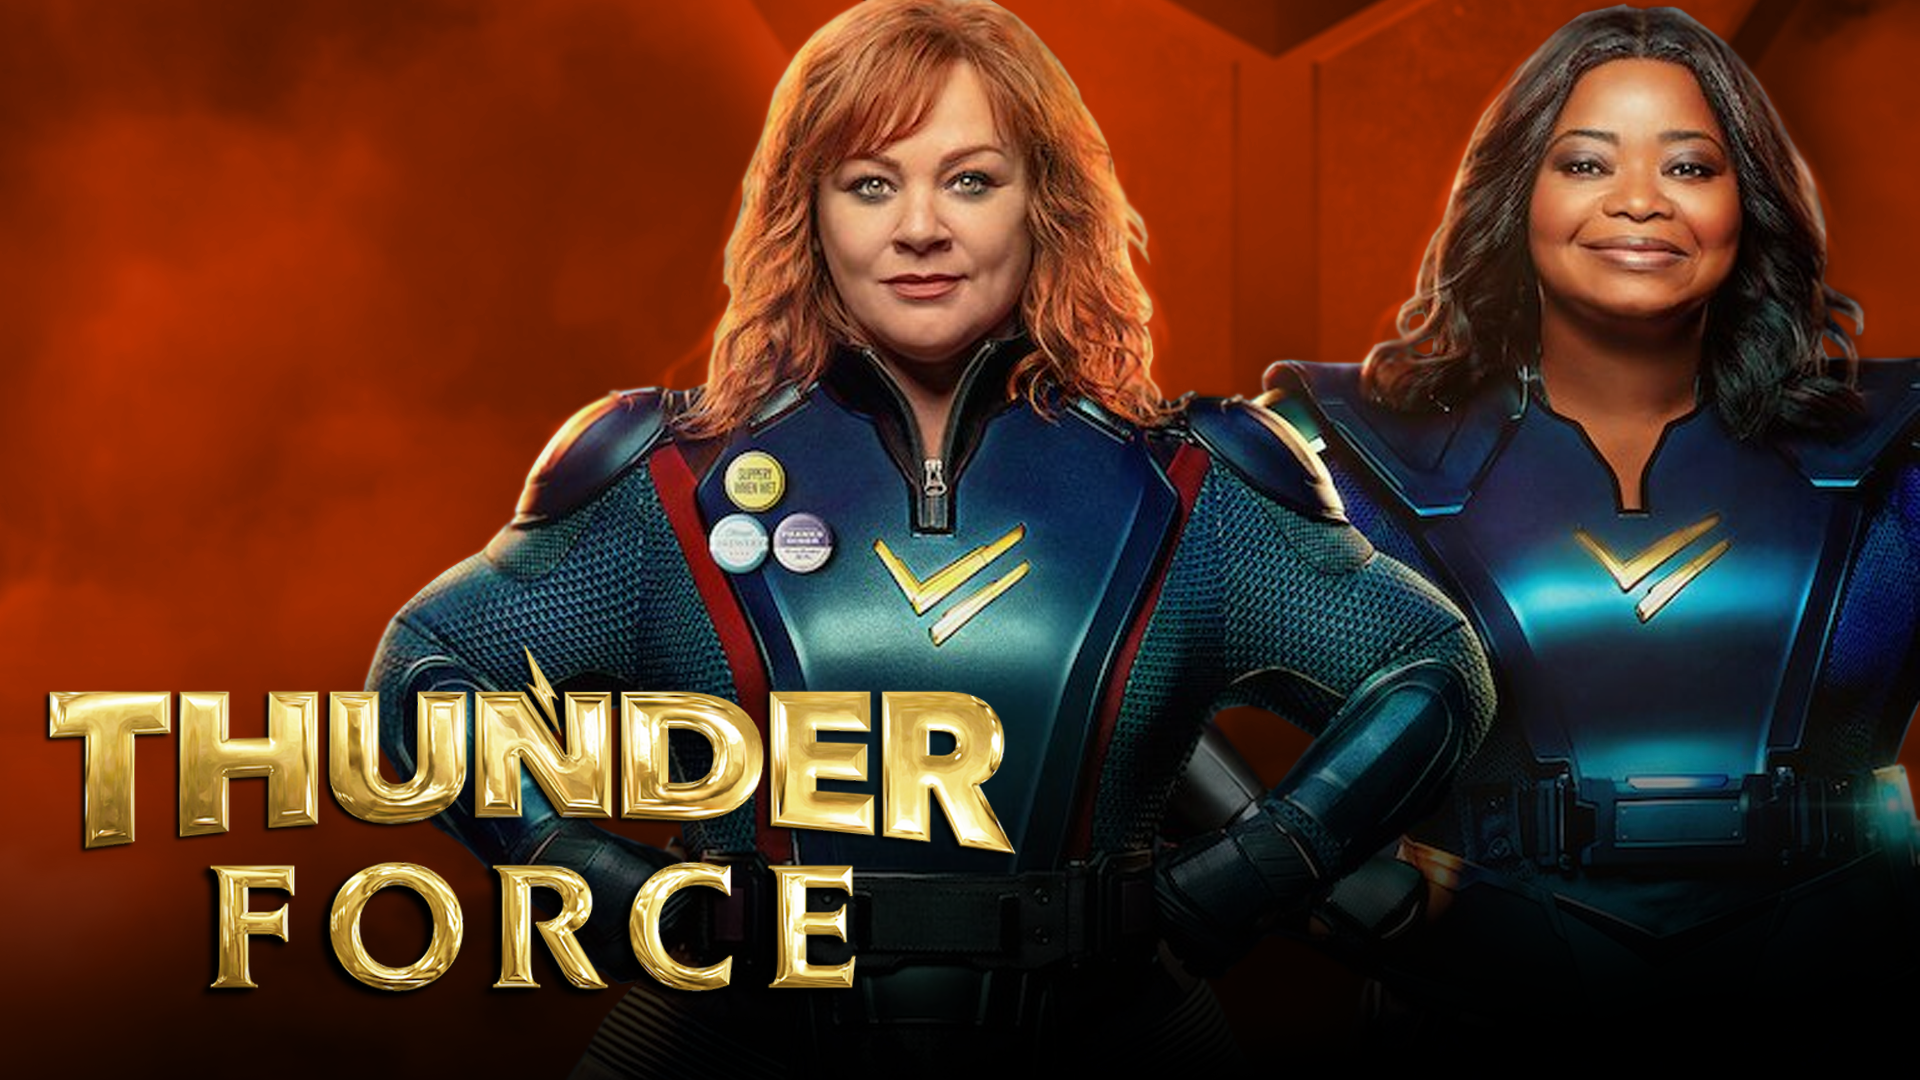 Thunder Force is kind of a weird, not that great movie